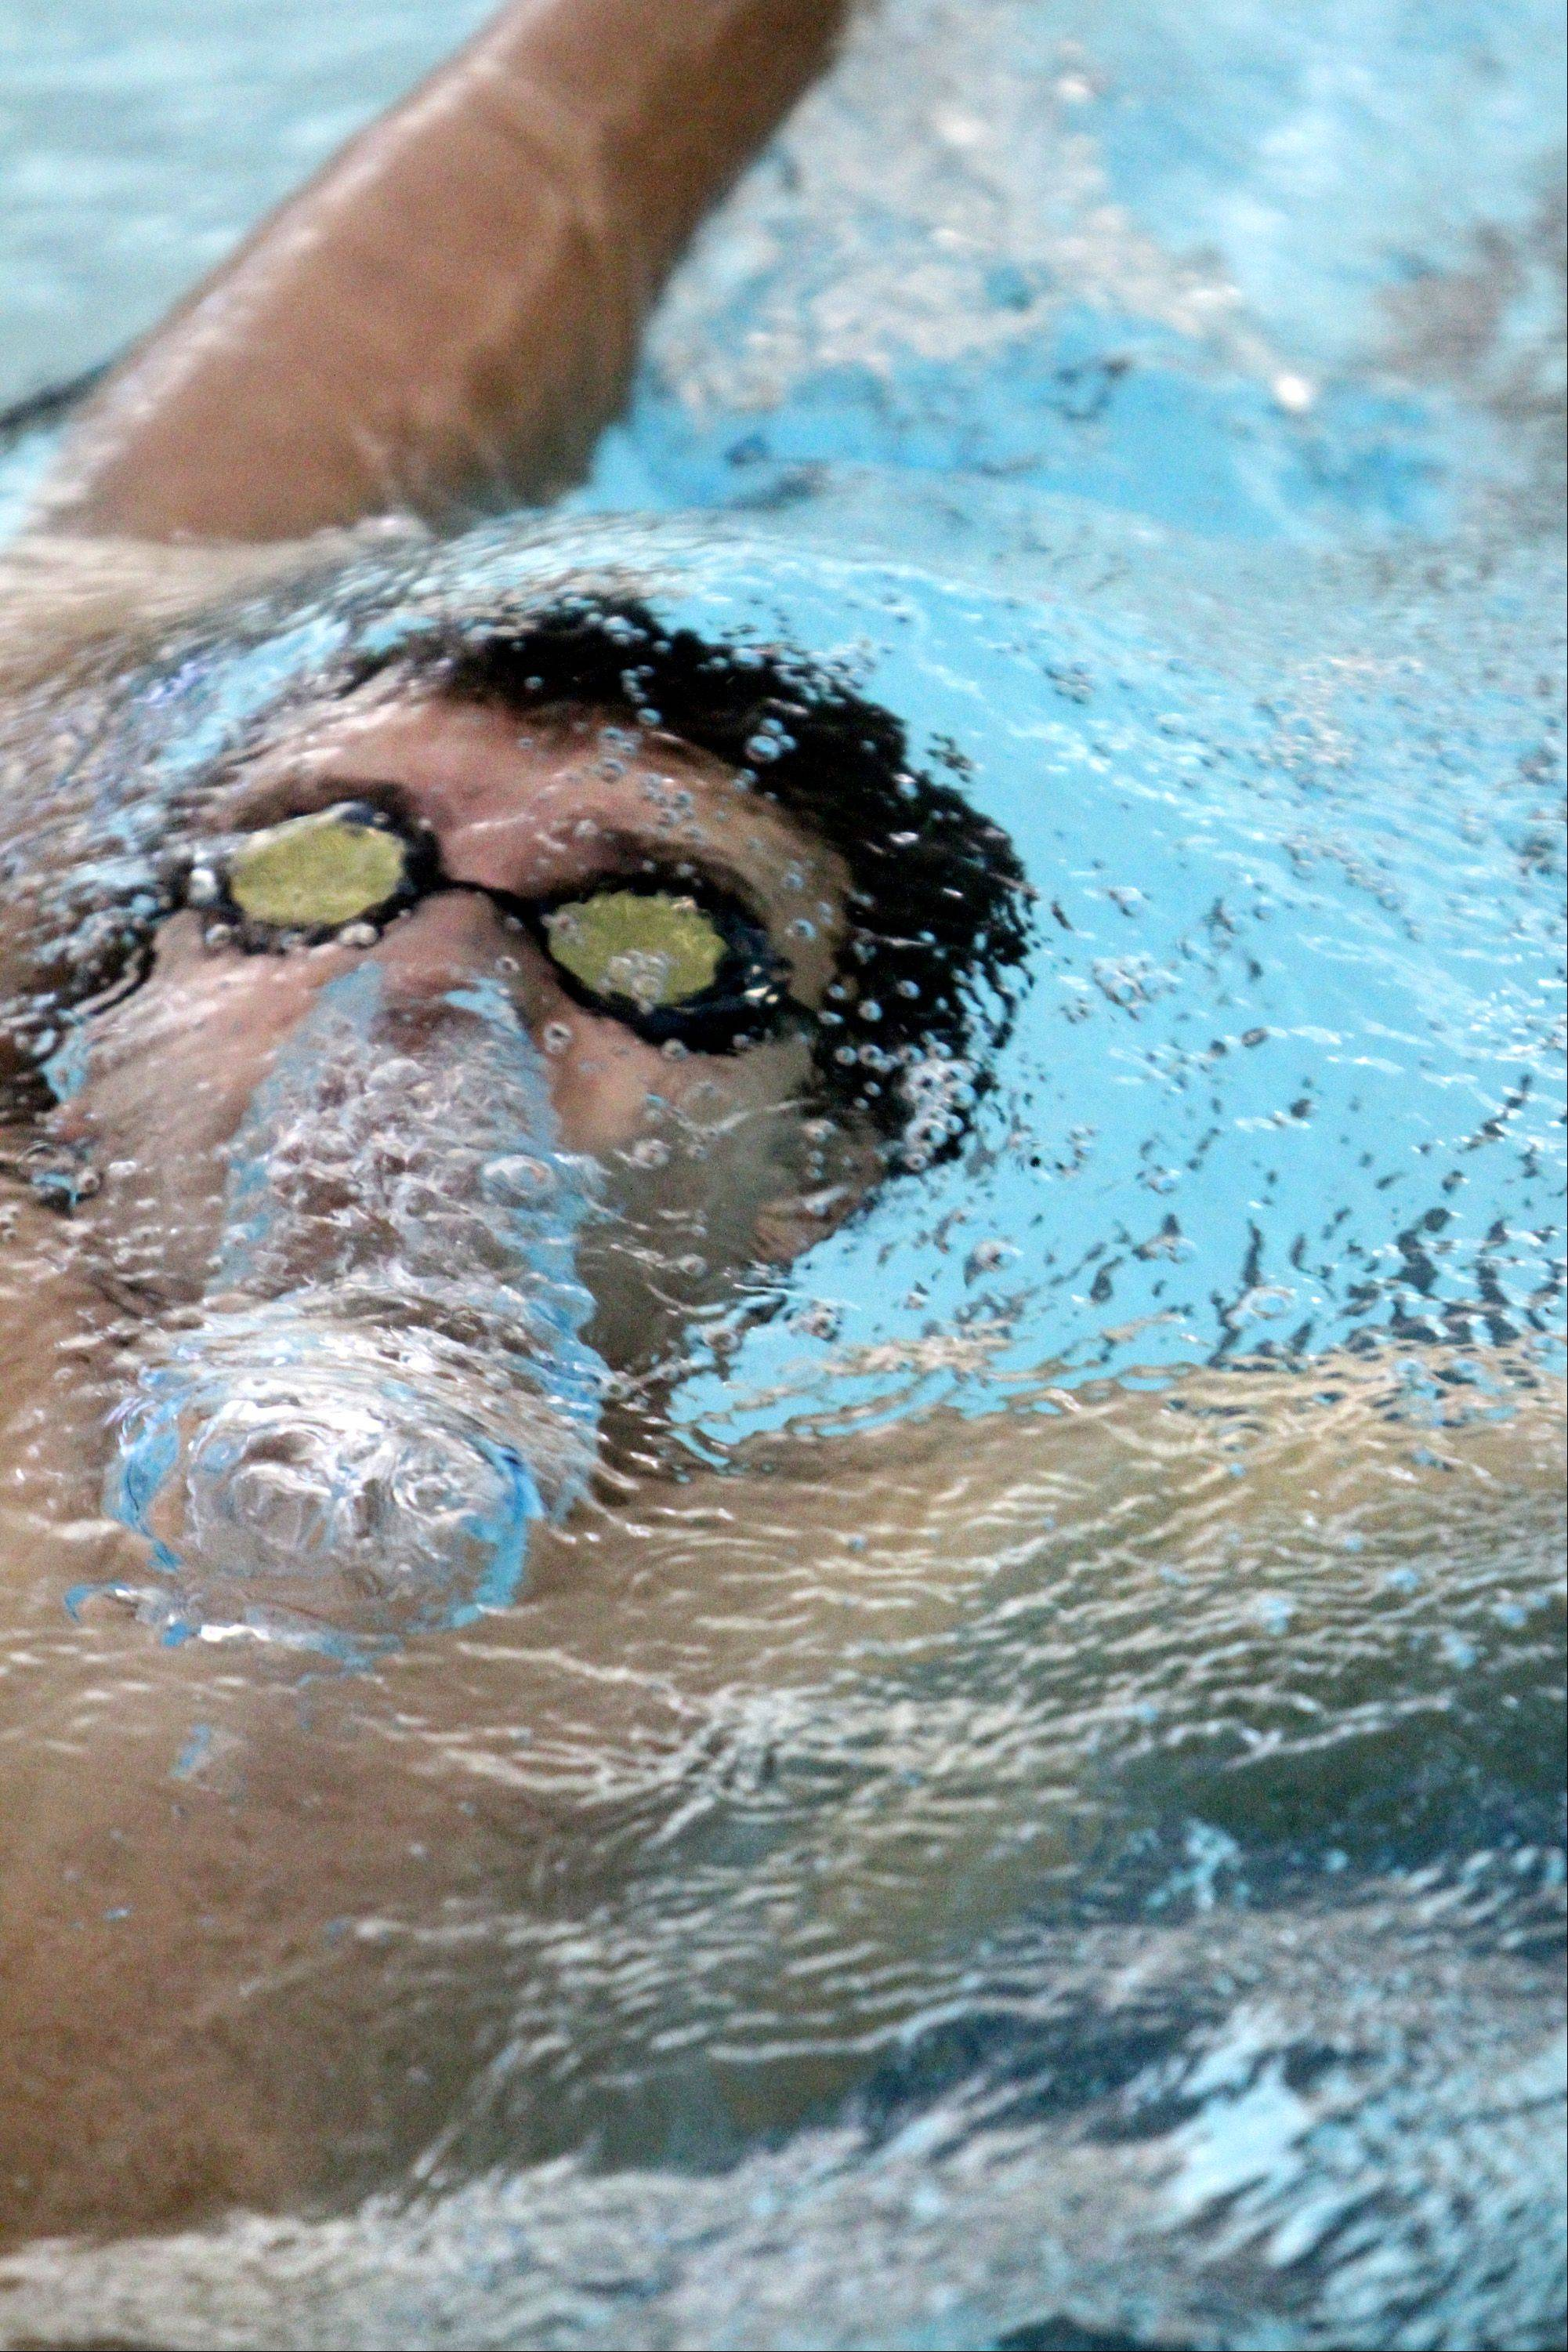 Mundelein's Jason Rehor swims the second heat of the 200-yard individual medley at Stevenson High School Saturday in Lincolnshire.